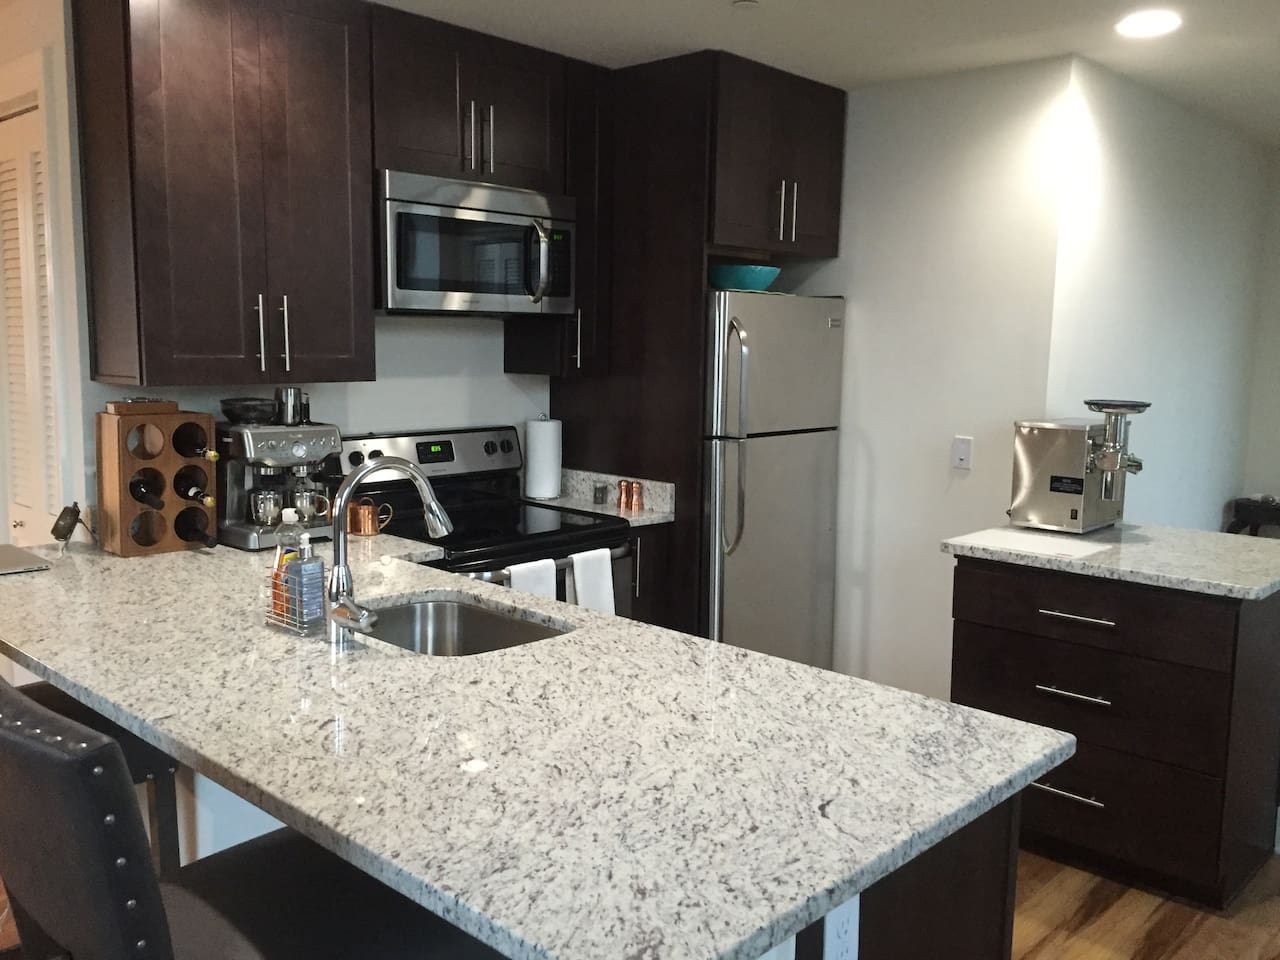 Open kitchen layout with granite countertops and stainless steel appliances including dishwasher.